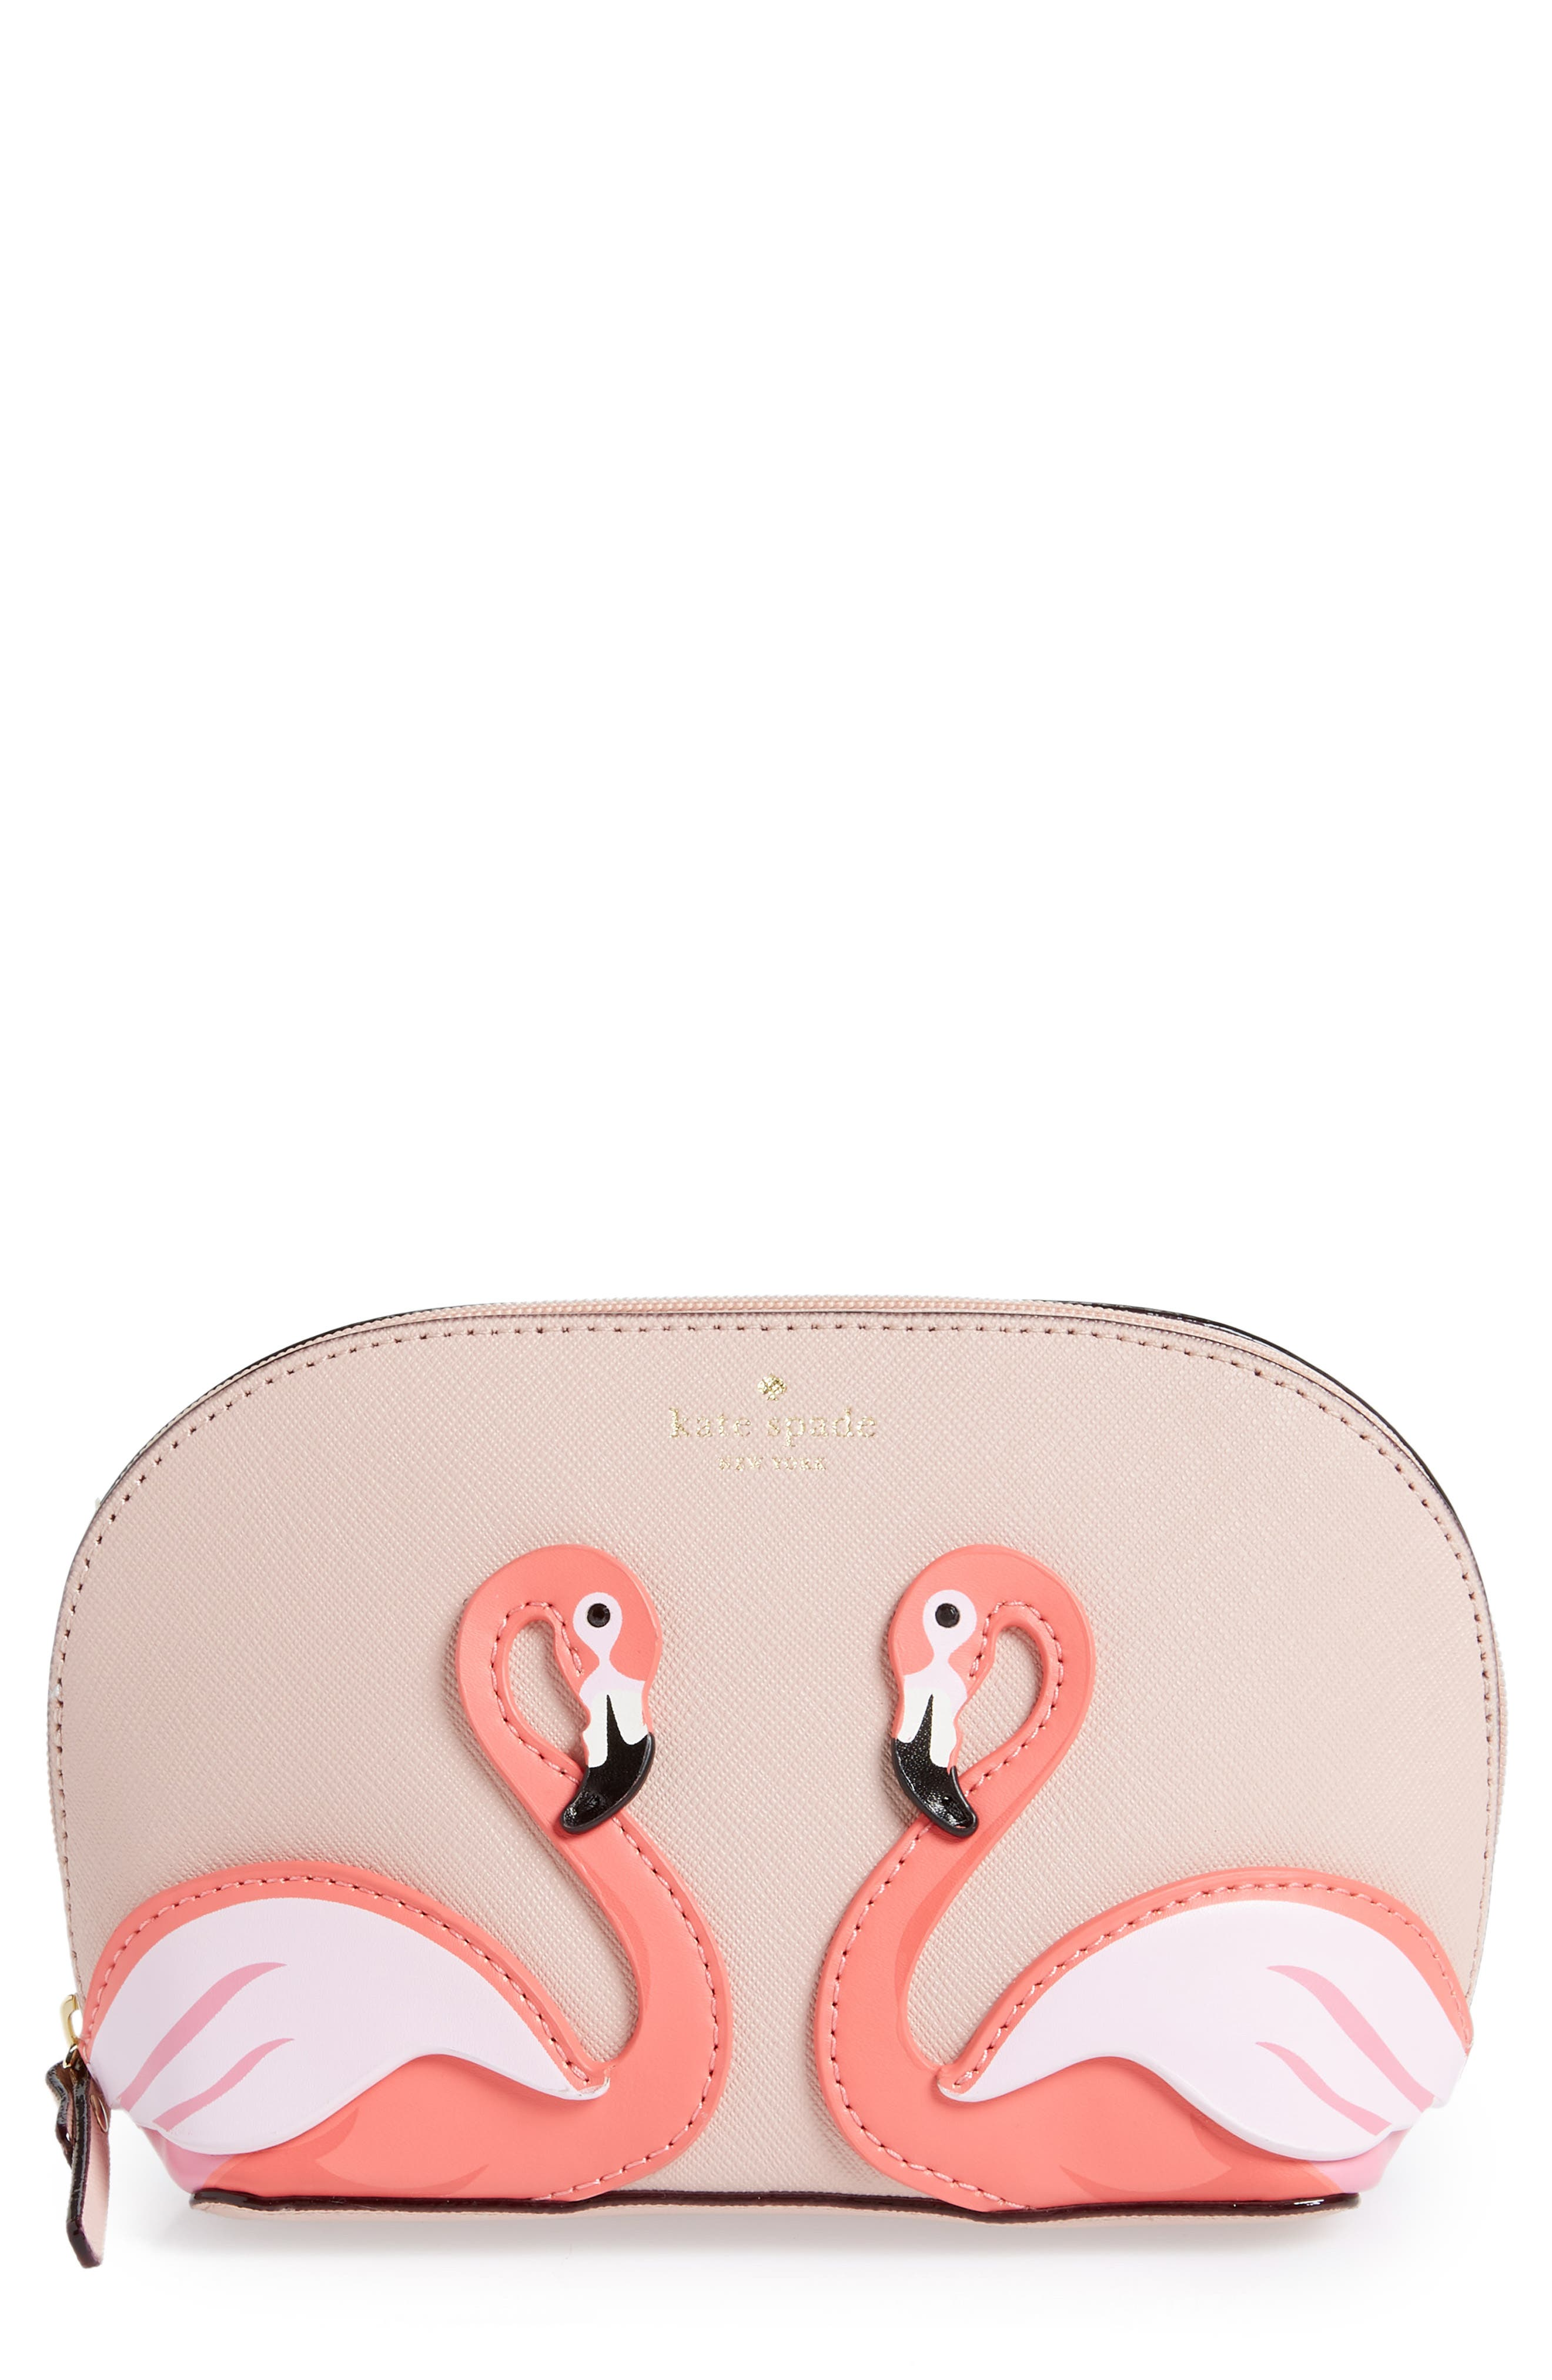 BY THE POOL FLAMINGO SMALL ABALENE LEATHER COSMETICS CASE